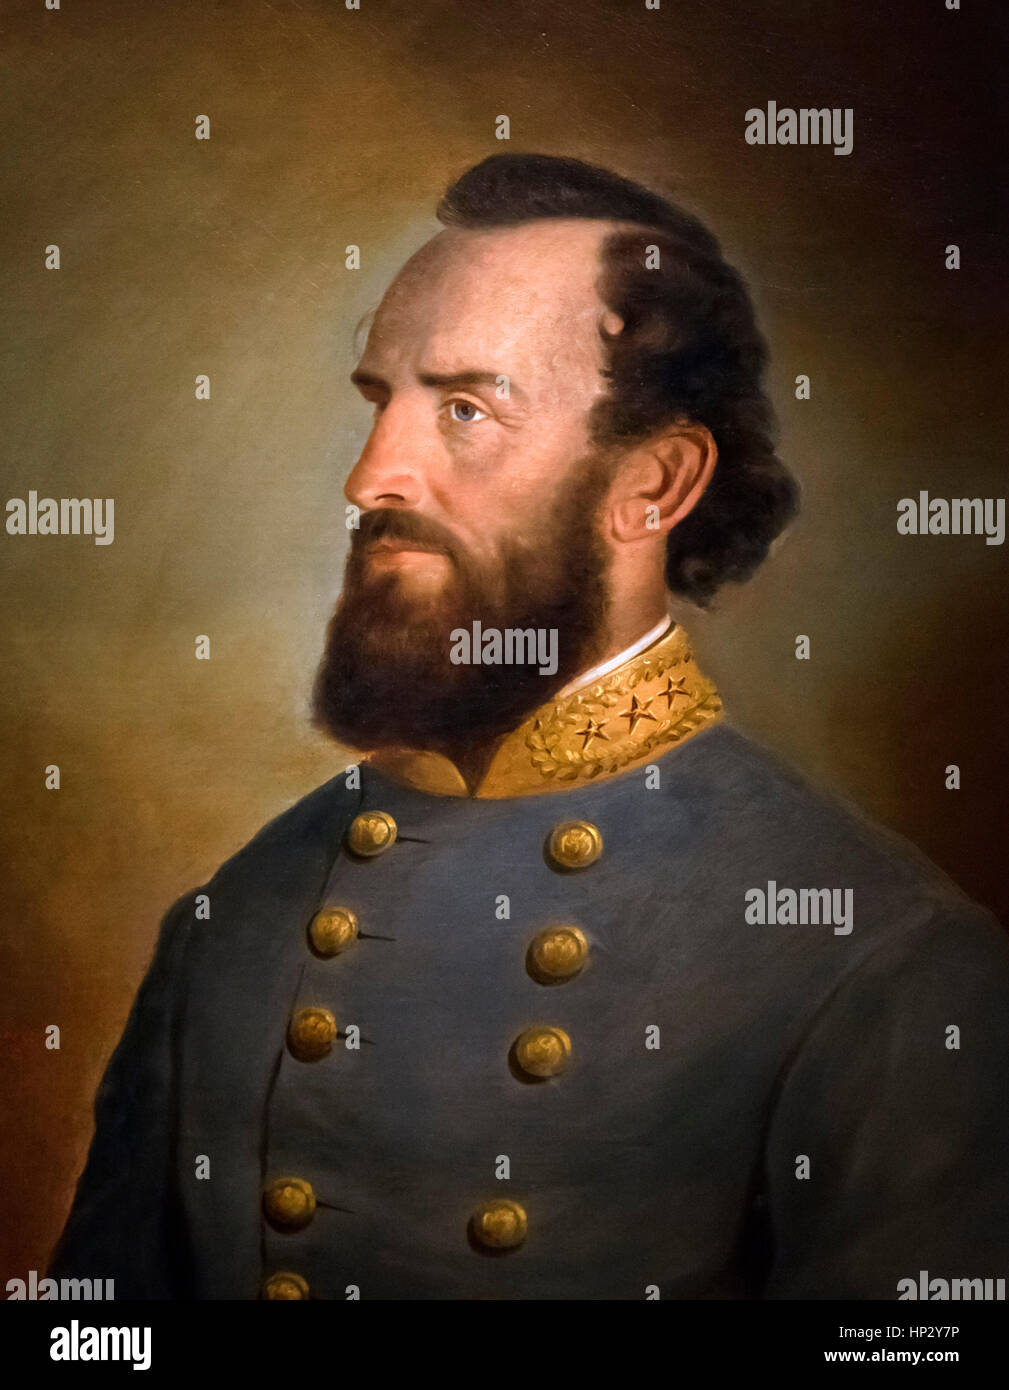 Stonewall Jackson. Portrait of the Confederate Army General Thomas Jonathan 'Stonewall' Jackson (1824-1863) - Stock Image